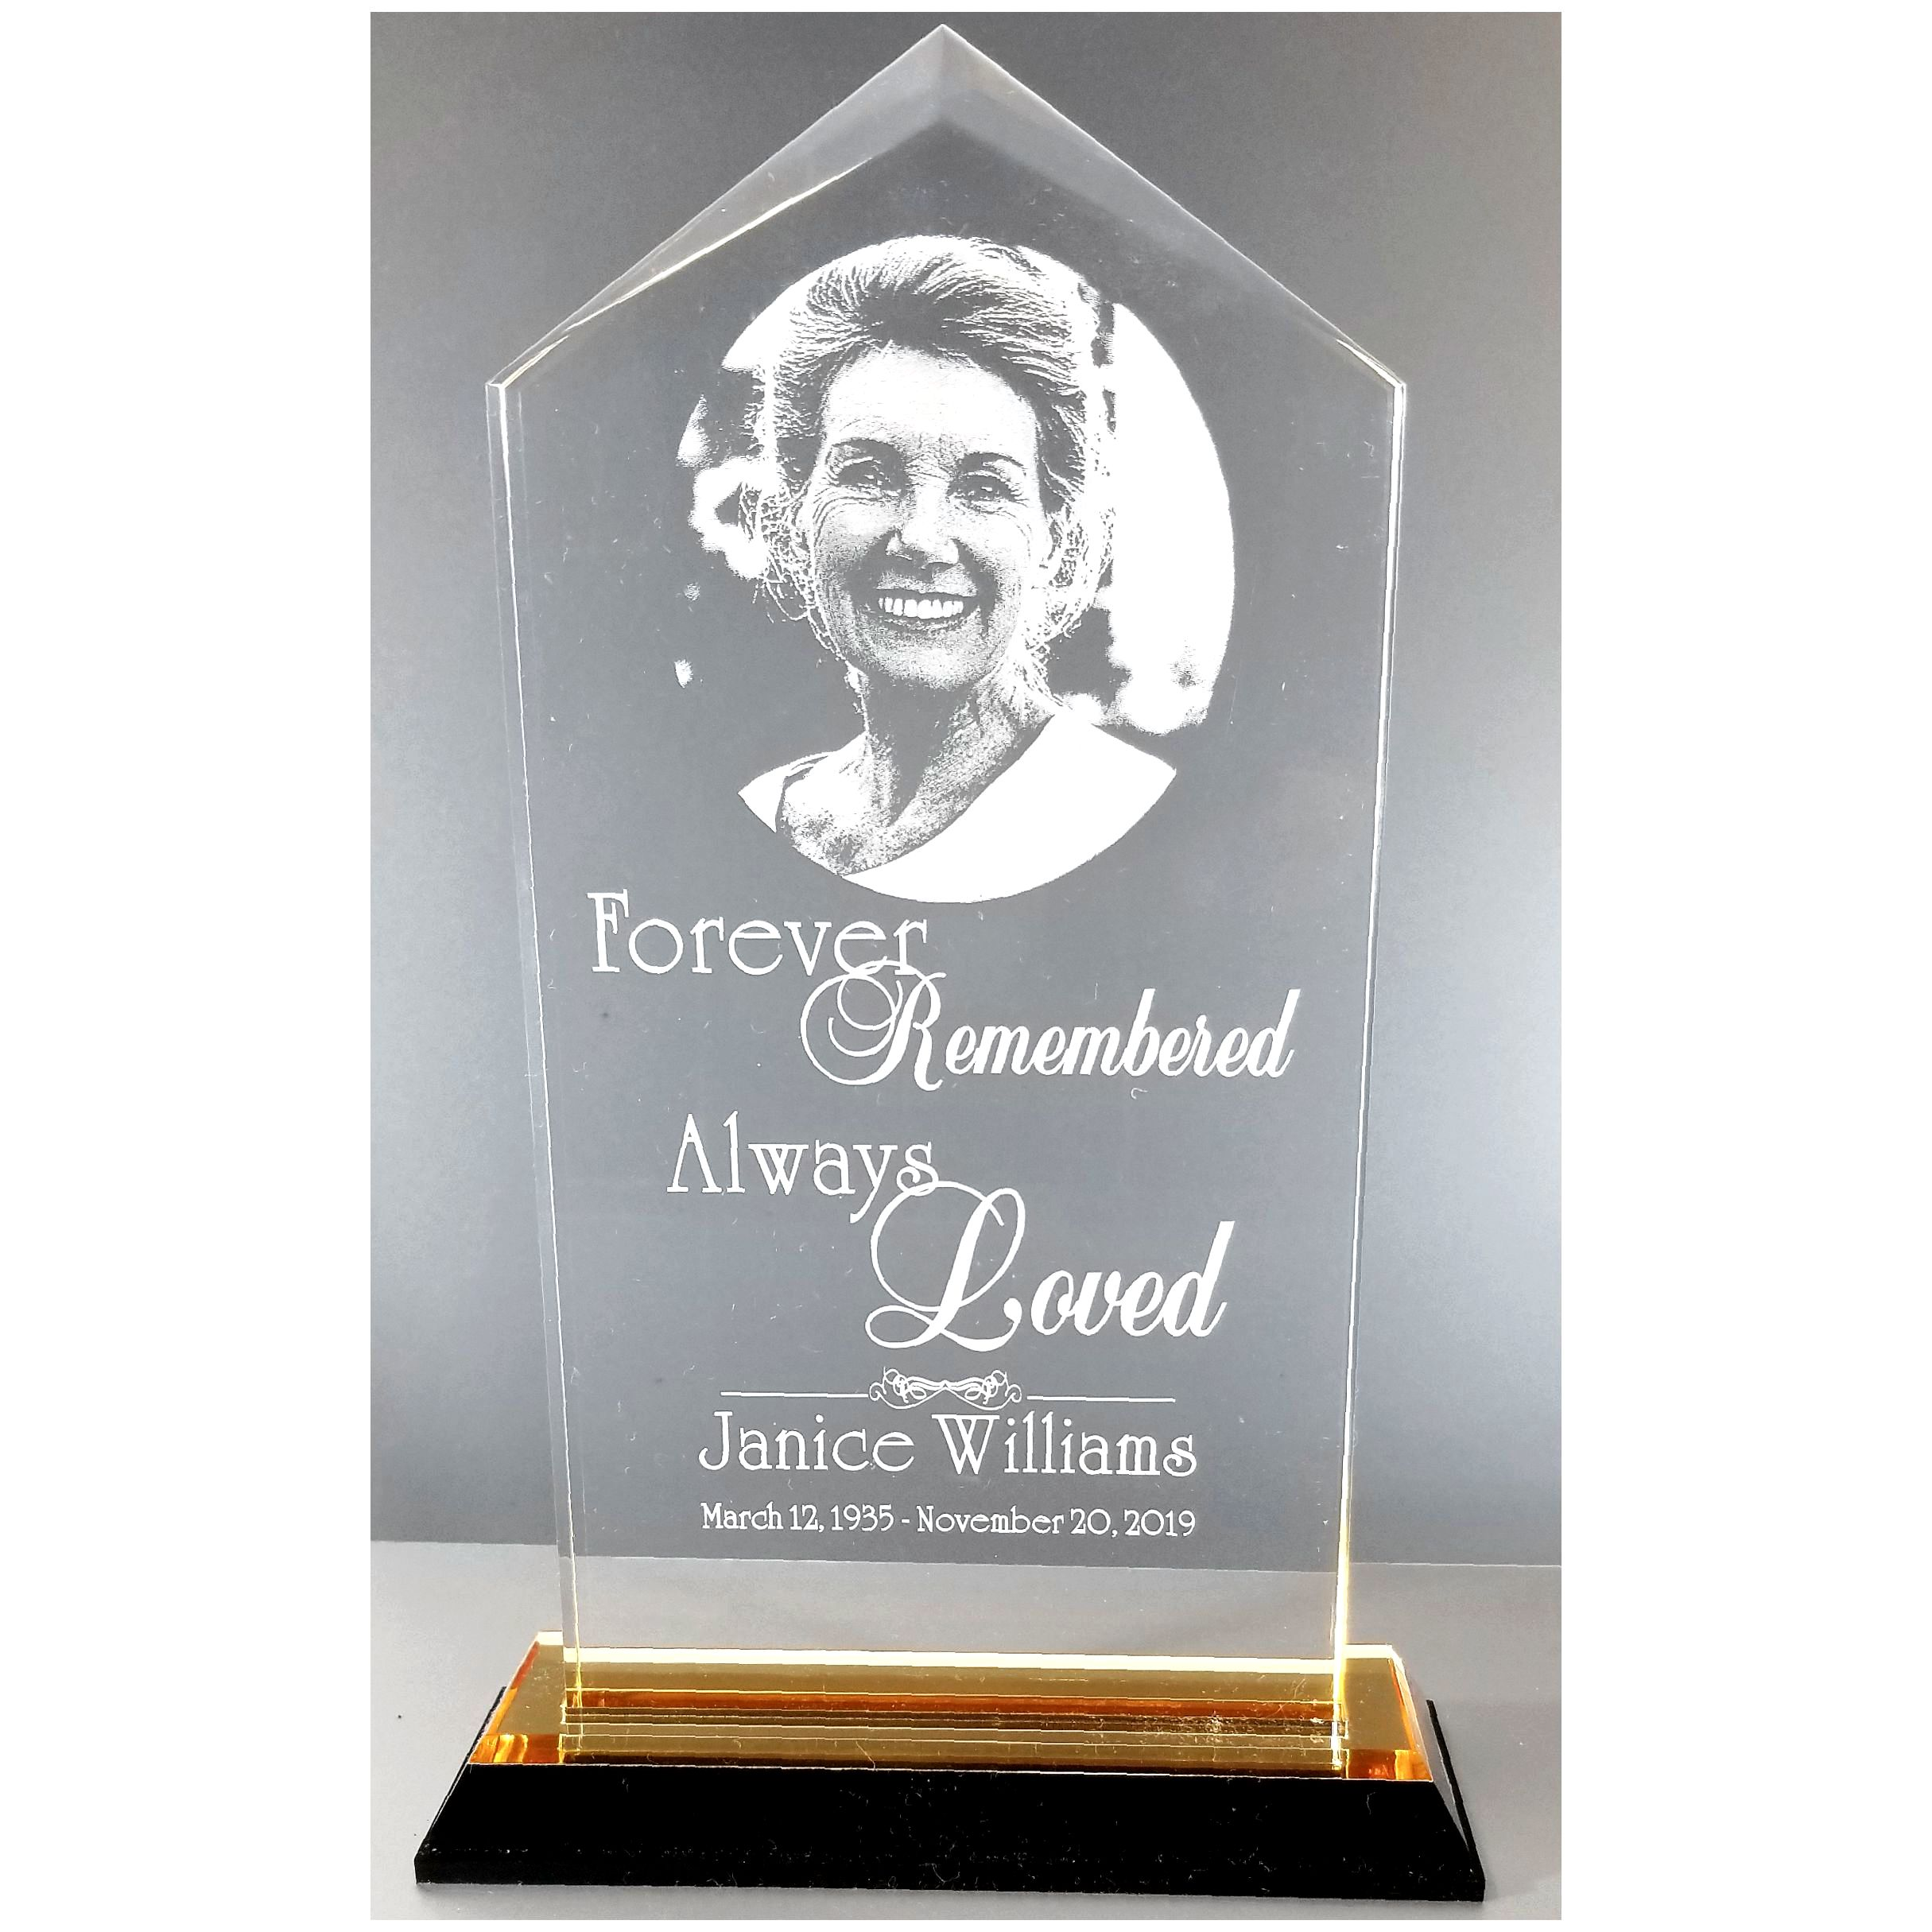 Personalized Acrylic Plaque 7